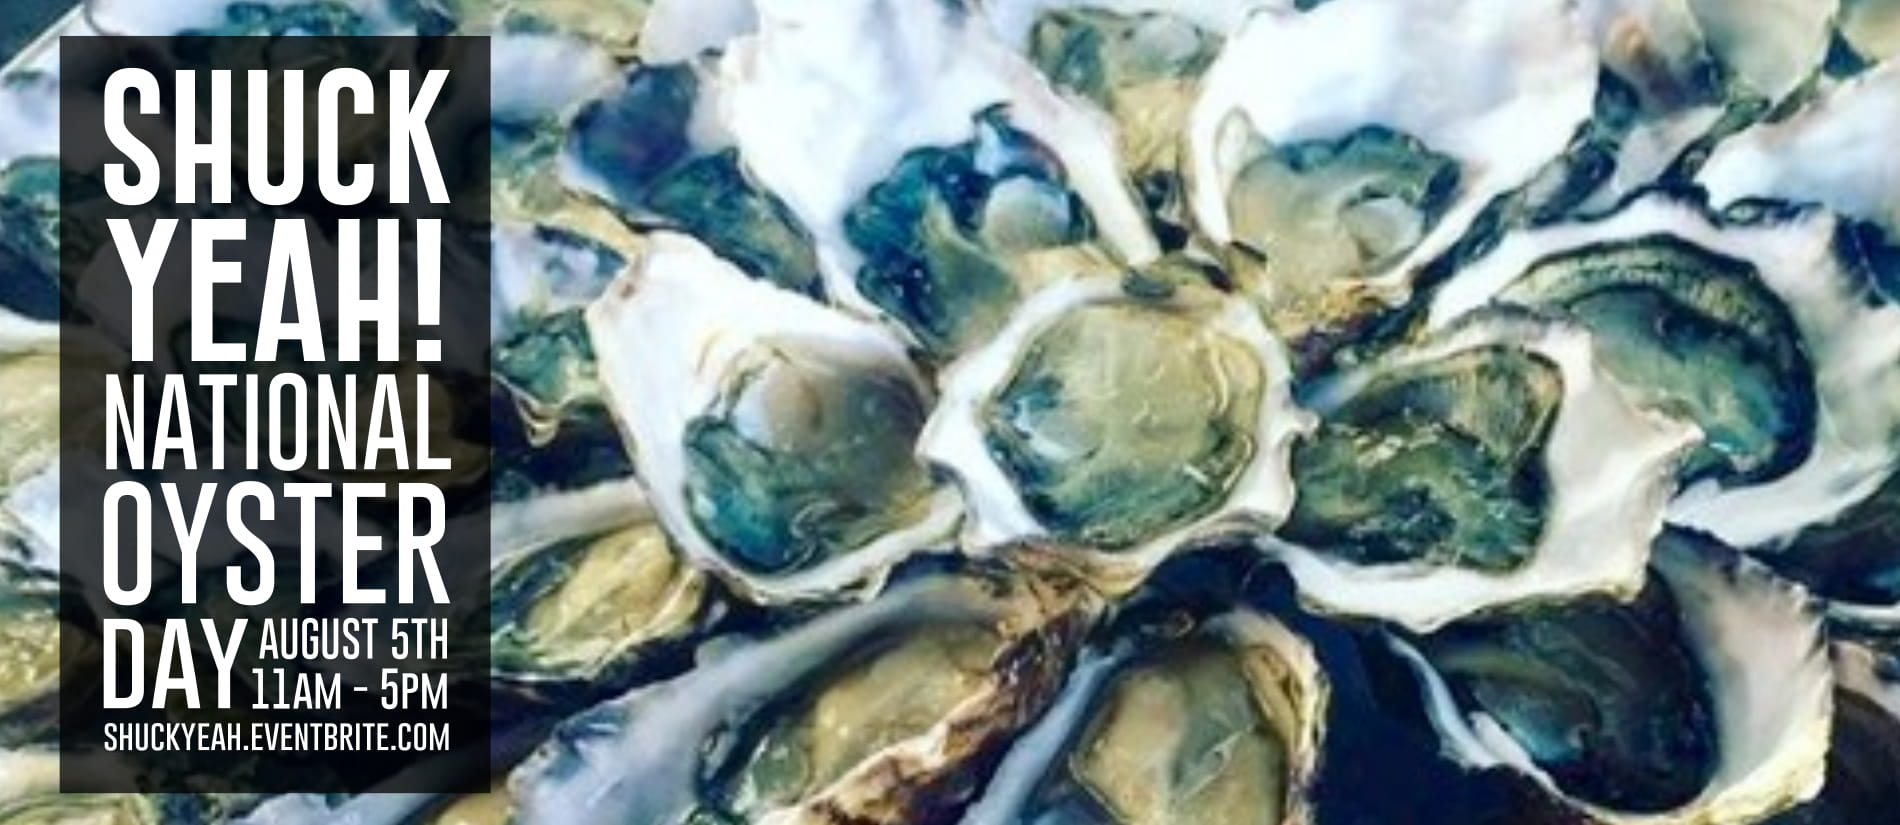 oyster fb cover-1.jpg